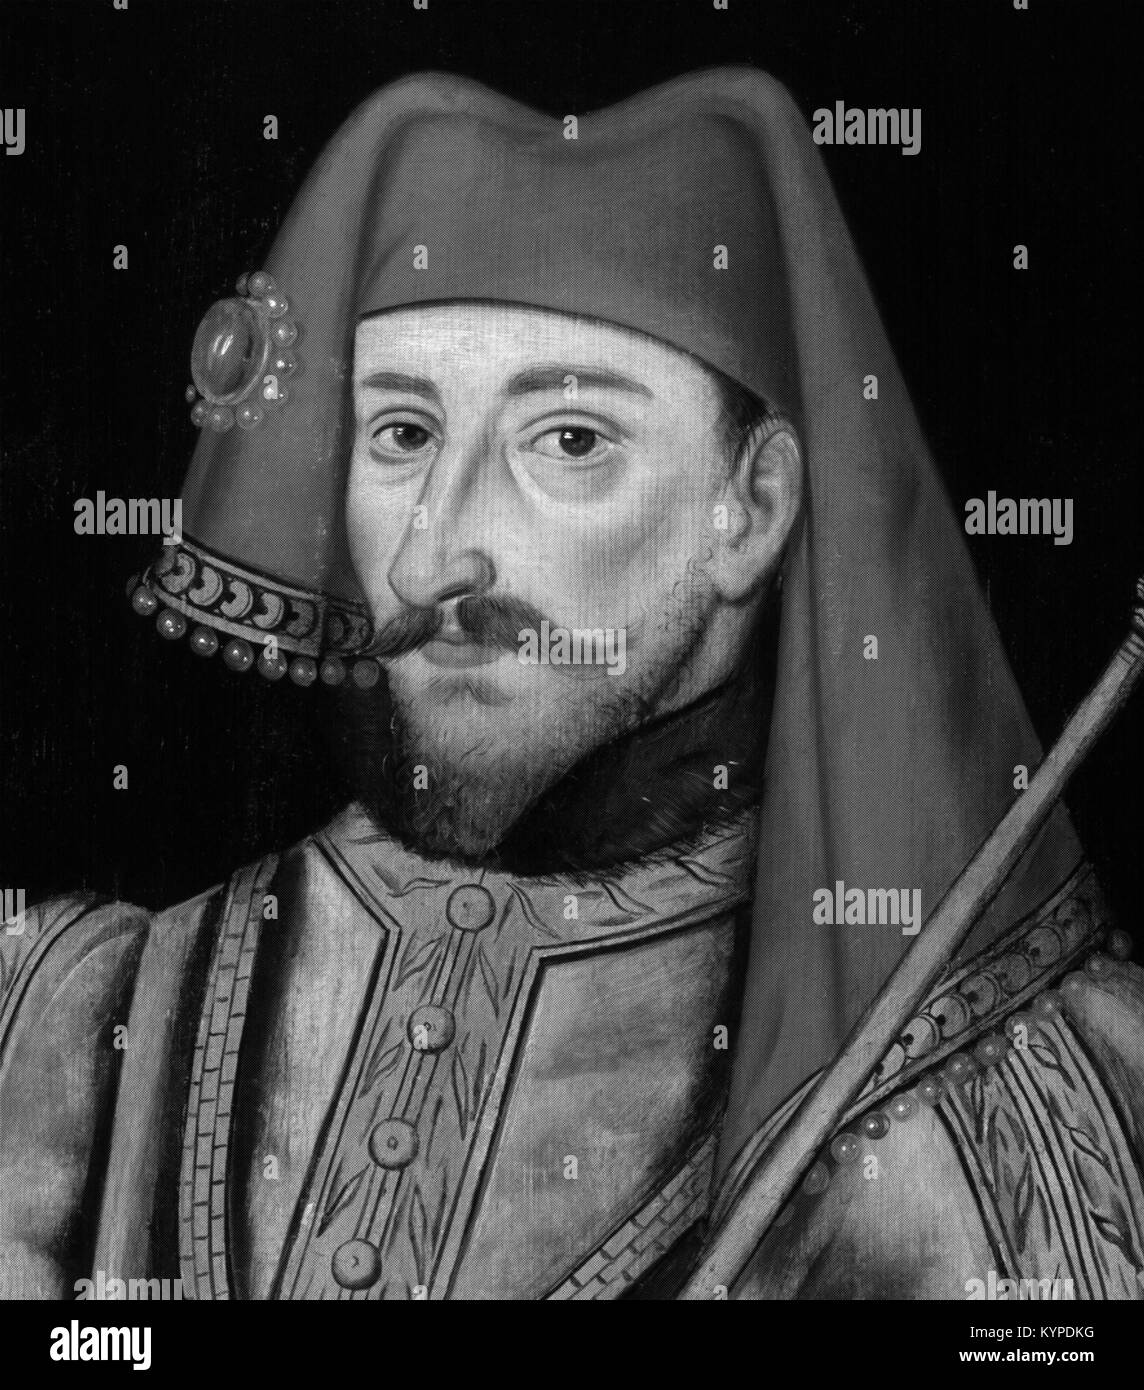 King Henry IV of England (1367-1413), who reigned from 1399 to 1413 Stock Photo